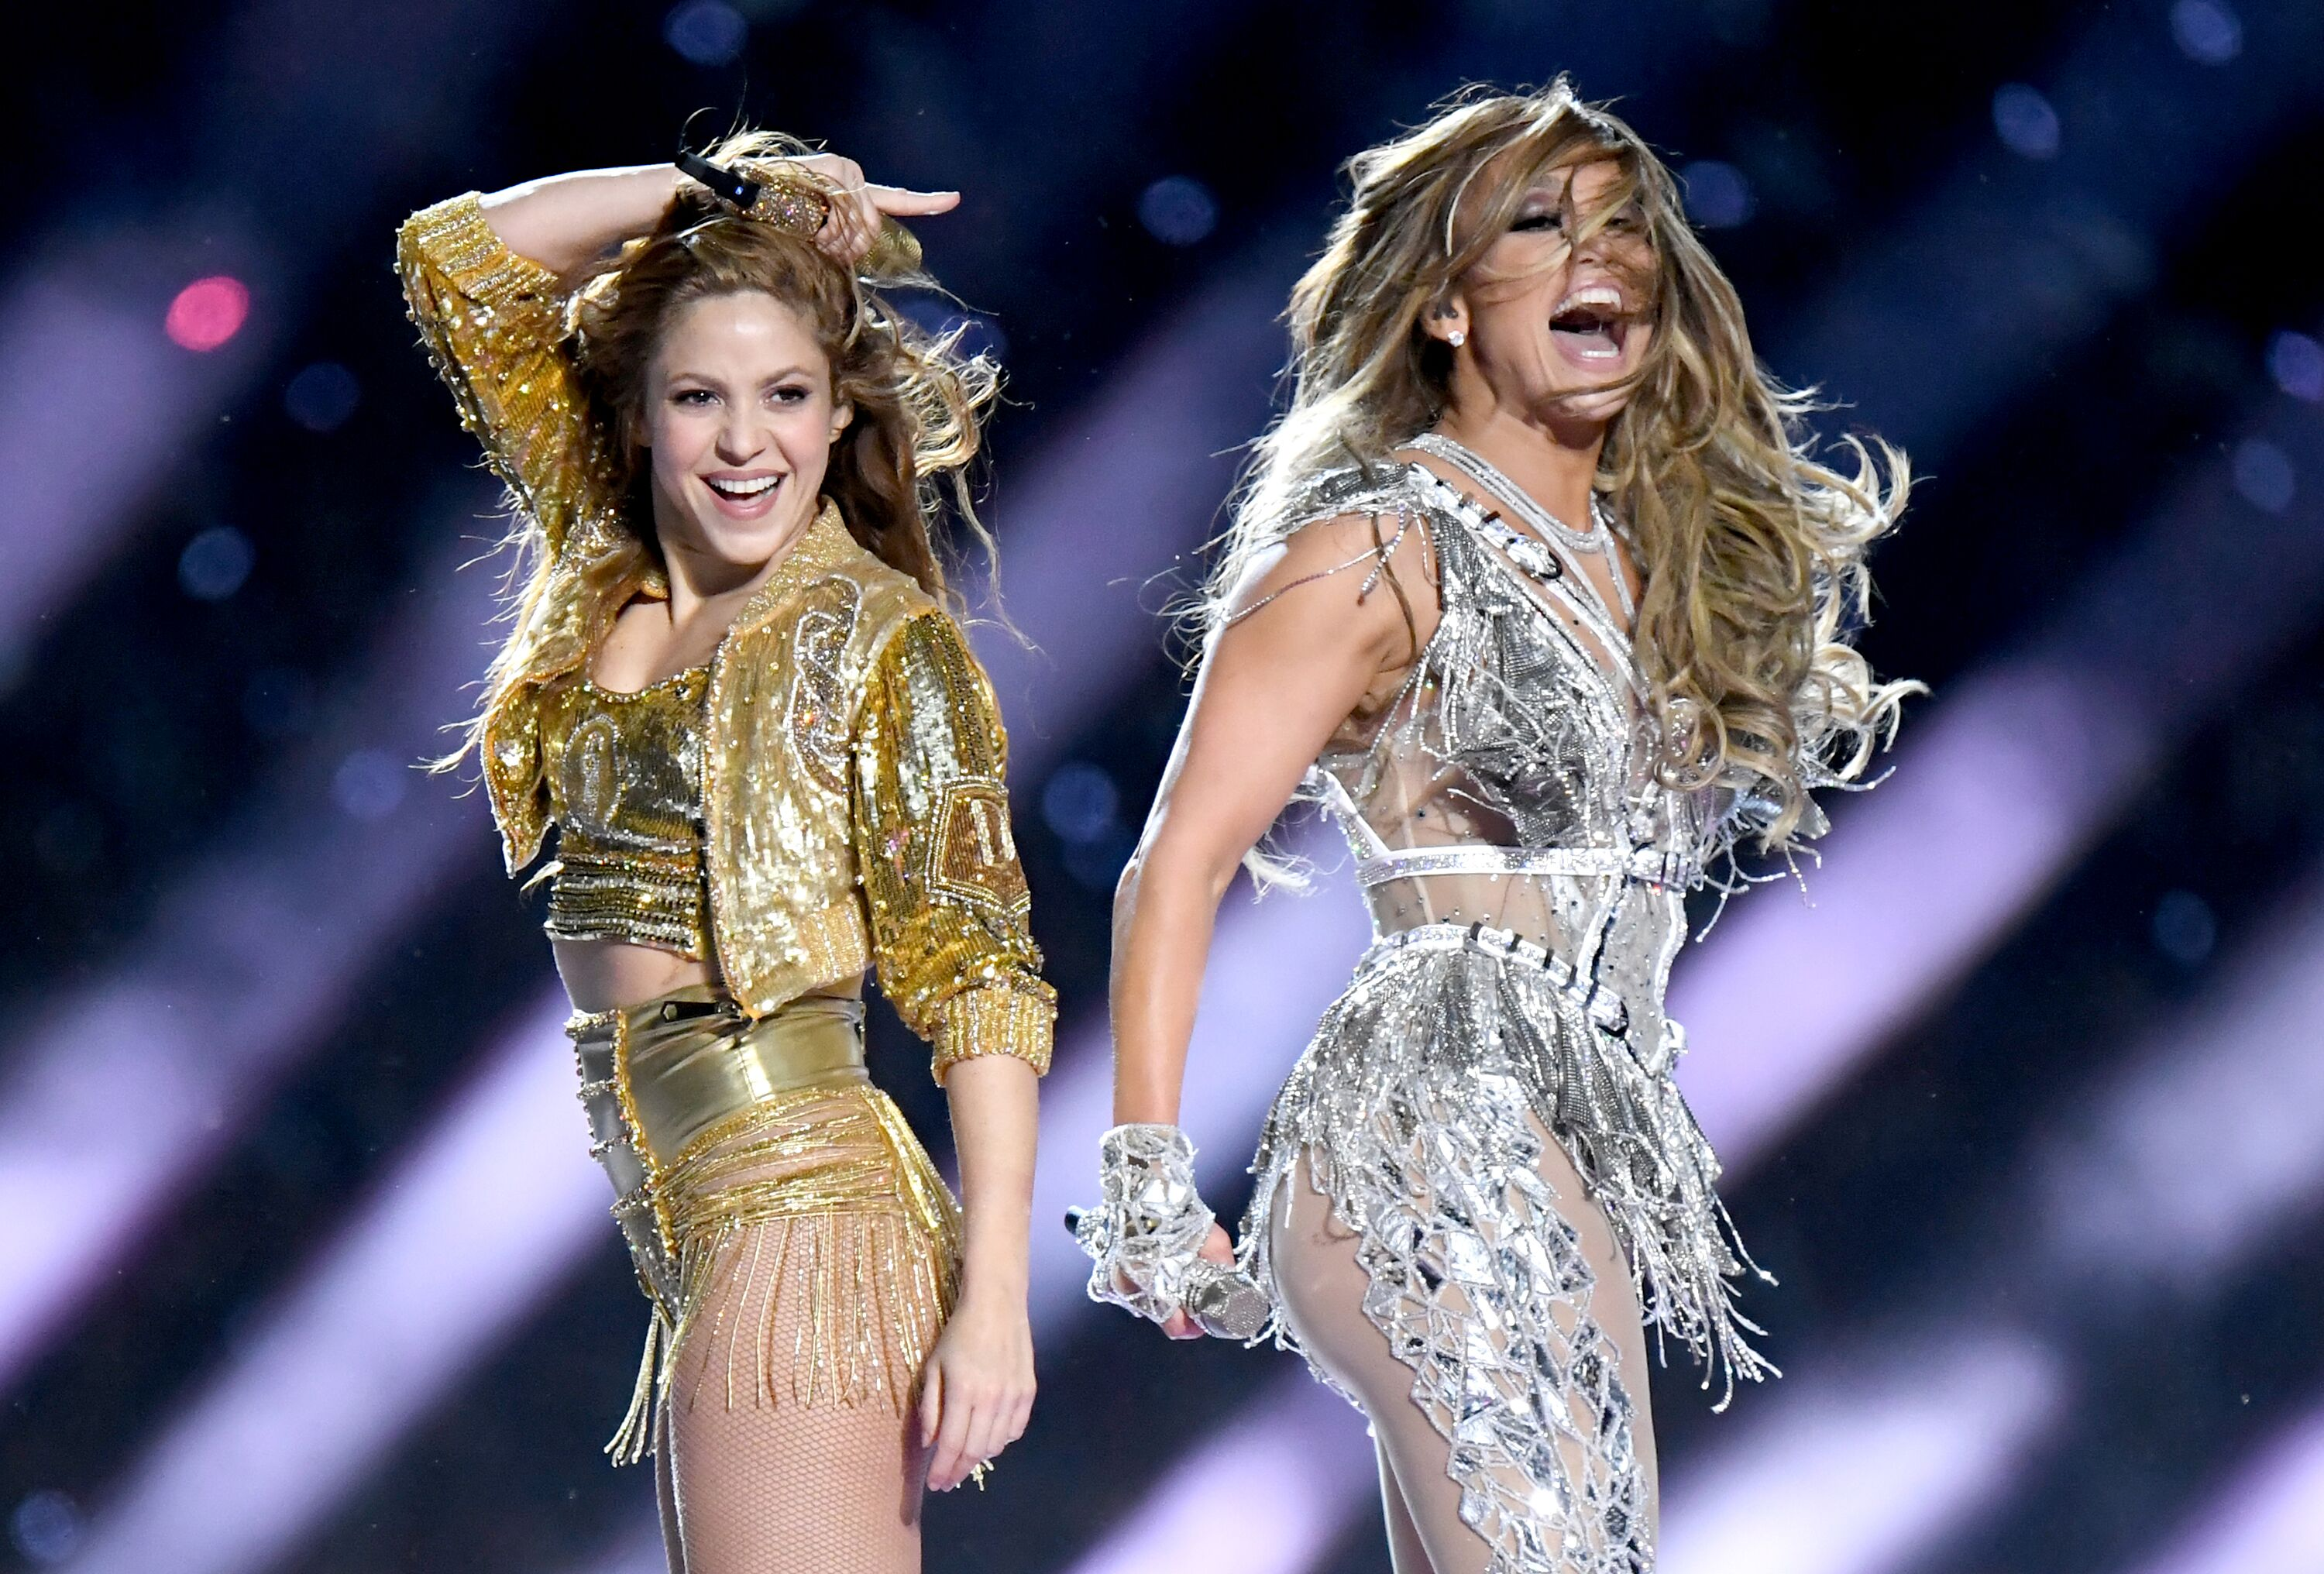 Shakira and Jennifer Lopez perform onstage during the Pepsi Super Bowl LIV Halftime Show at Hard Rock Stadium on February 02, 2020, in Miami, Florida | Photo: Jeff Kravitz/Getty Images